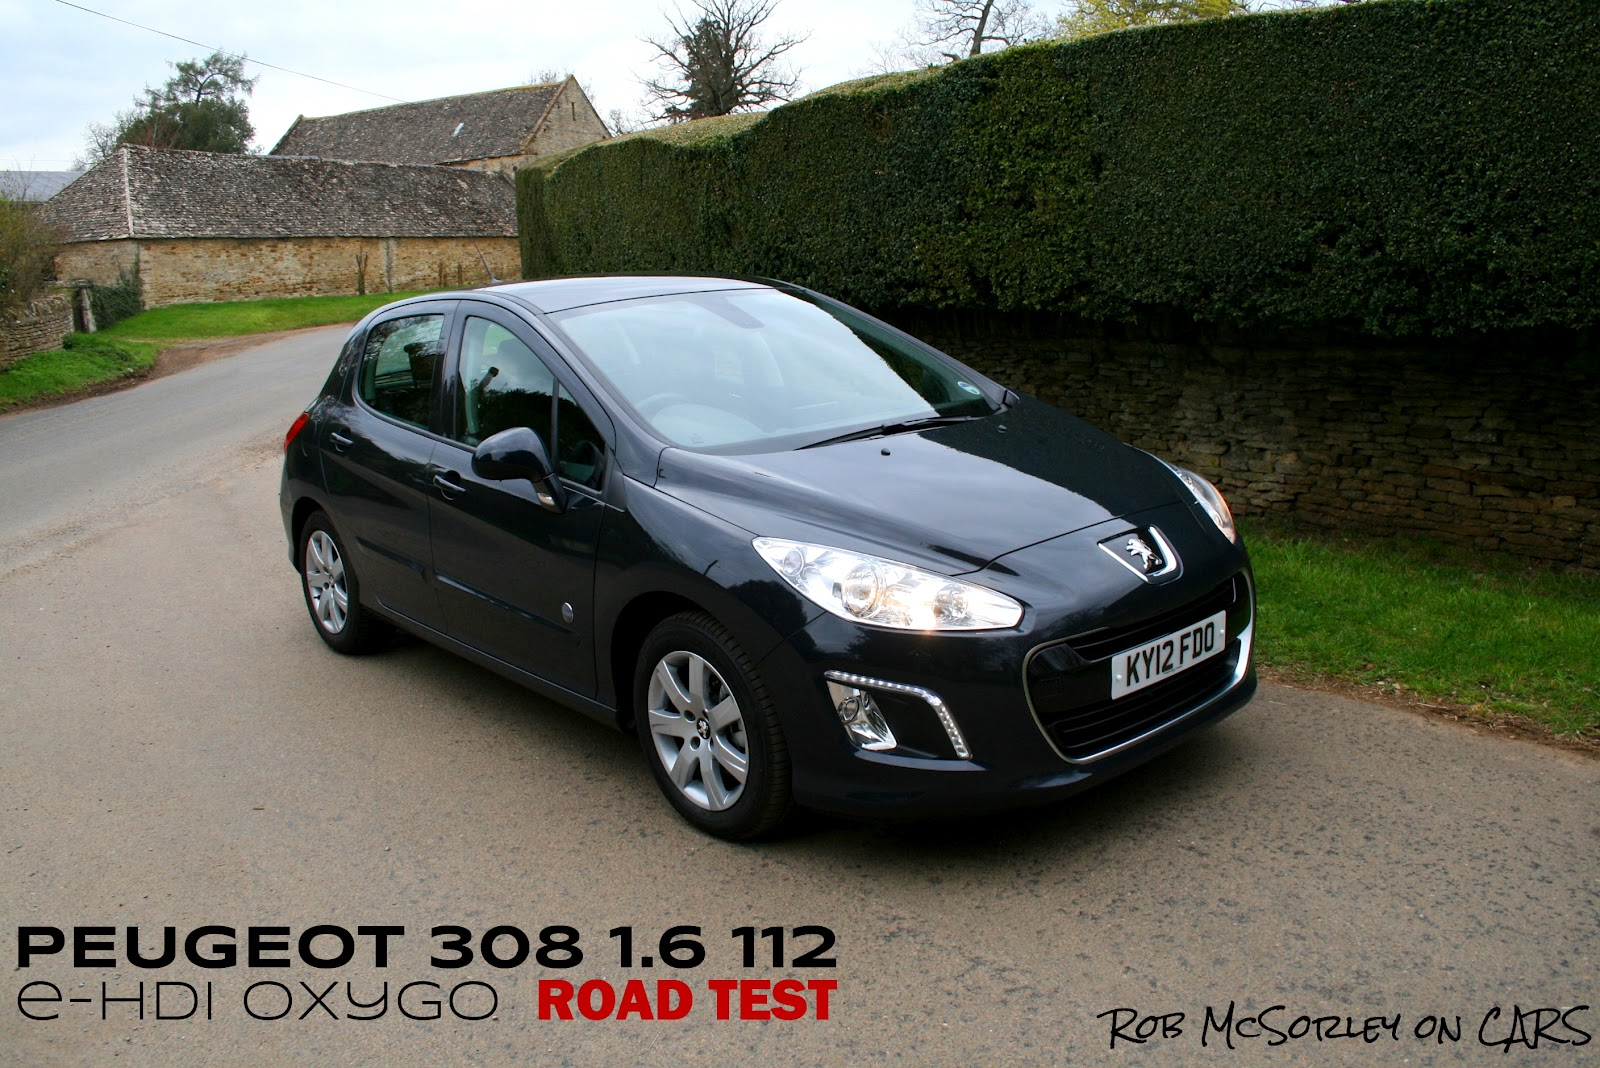 robmcsorleyoncars 2012 peugeot 308 full road test. Black Bedroom Furniture Sets. Home Design Ideas